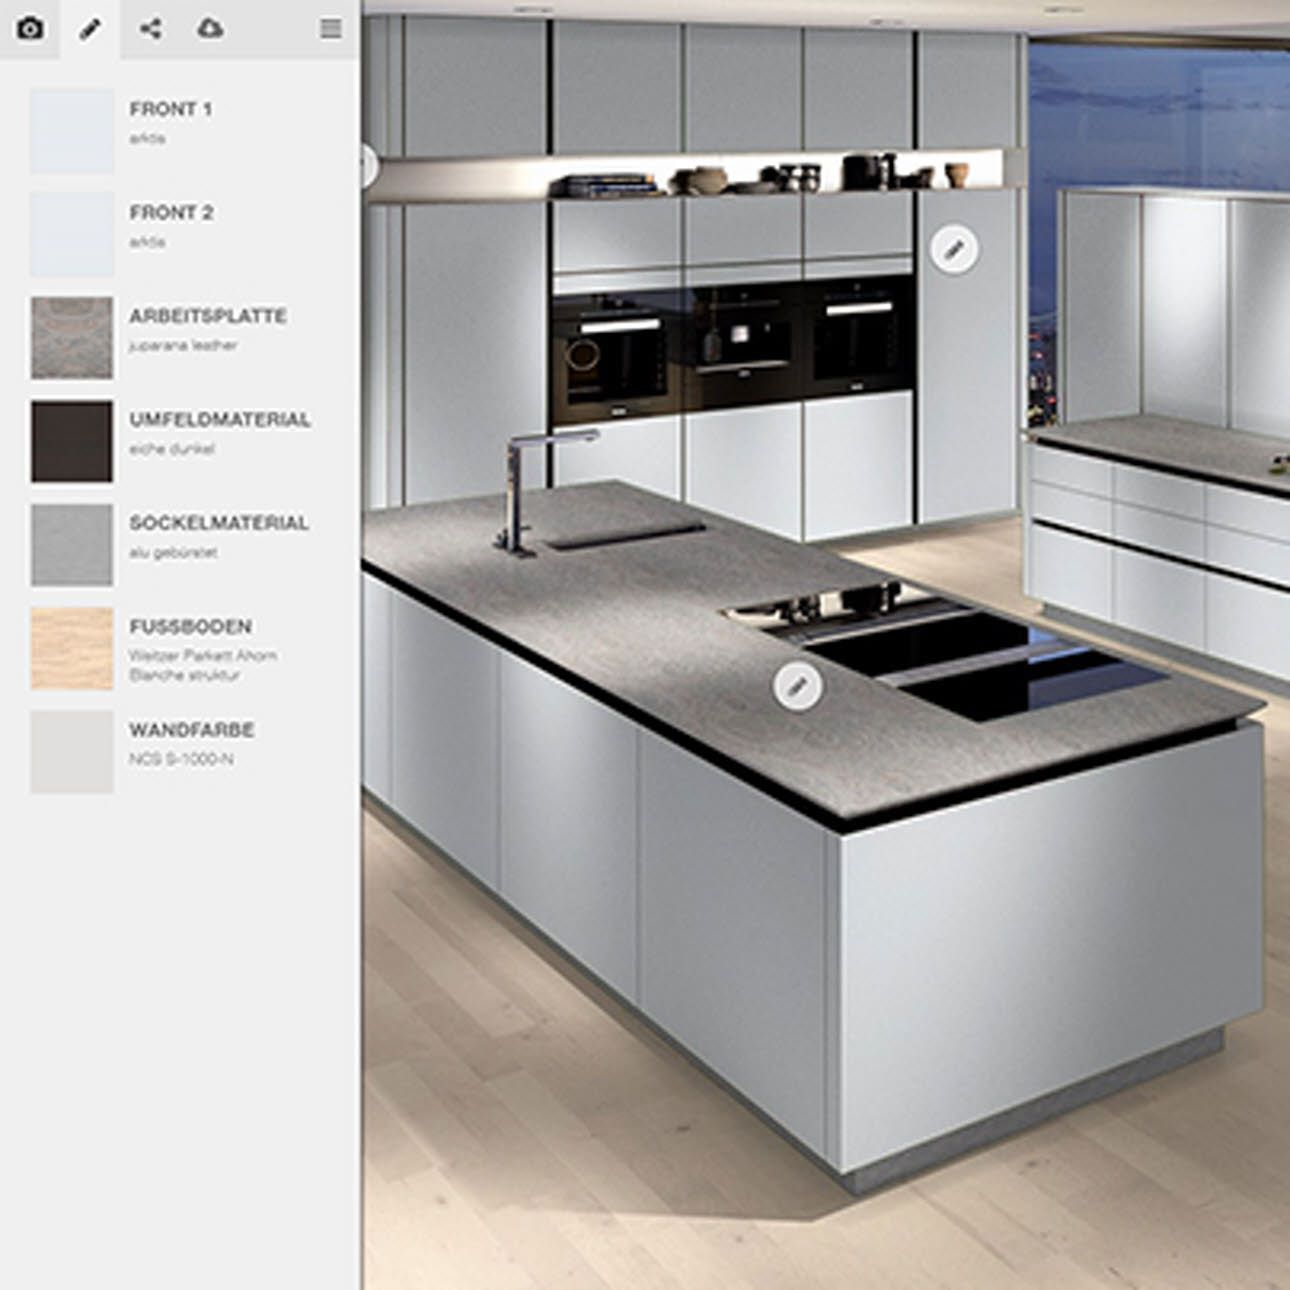 Pantry Küche Bauhaus Intuo Configurator K I T C H E N Pinterest Küche